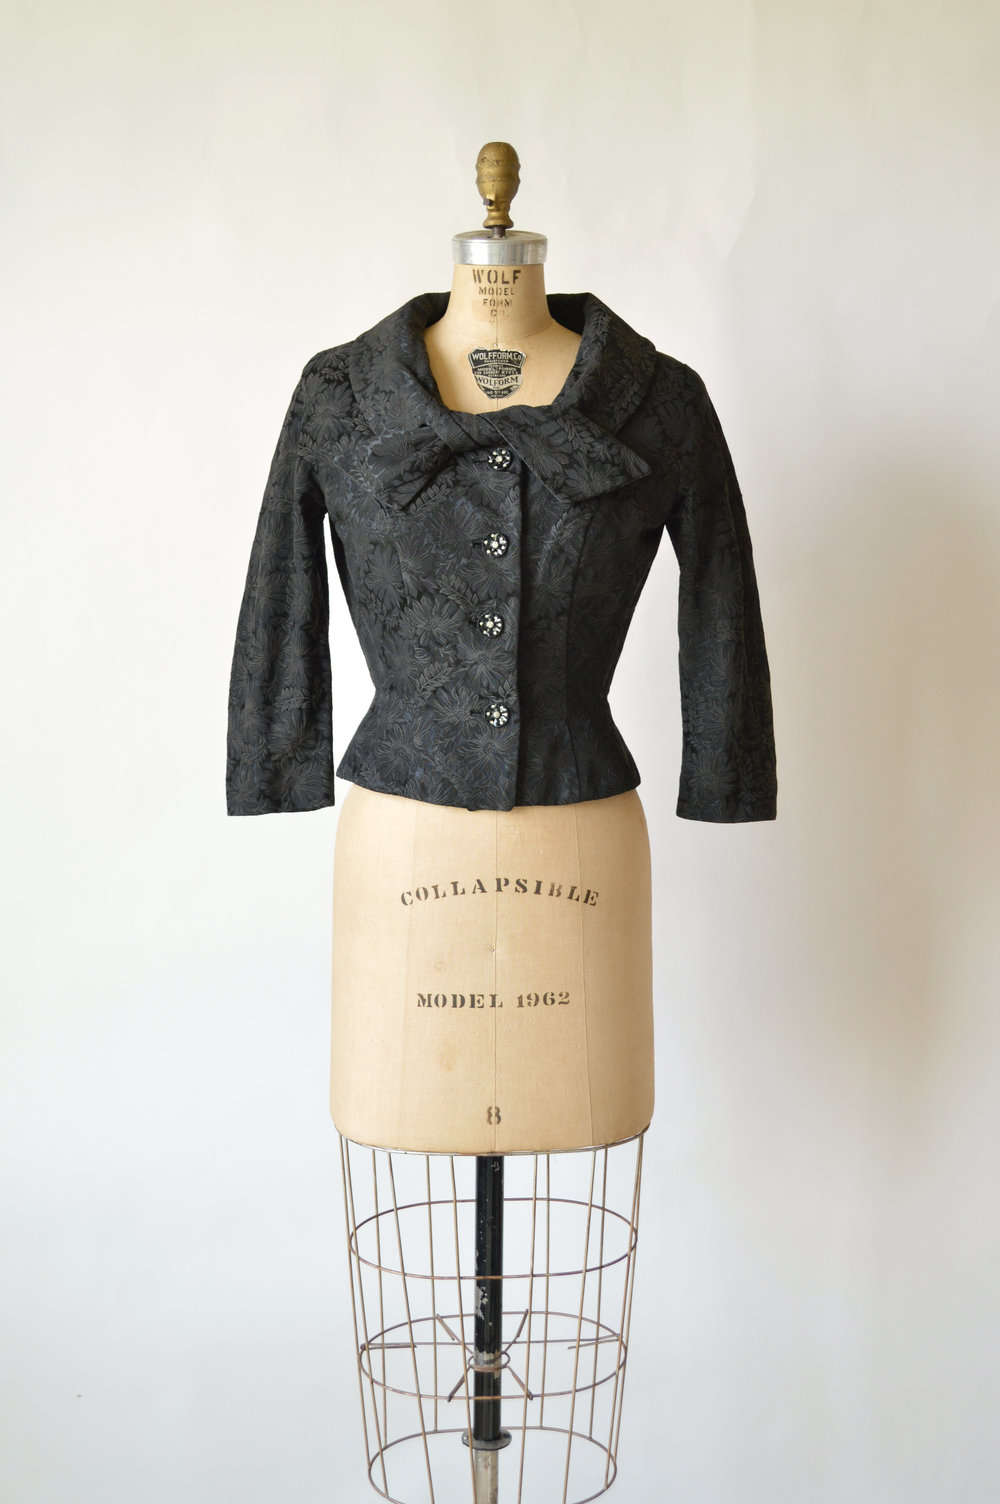 Vintage 1950's Tailored Holiday Jacket from Dalena Vintage